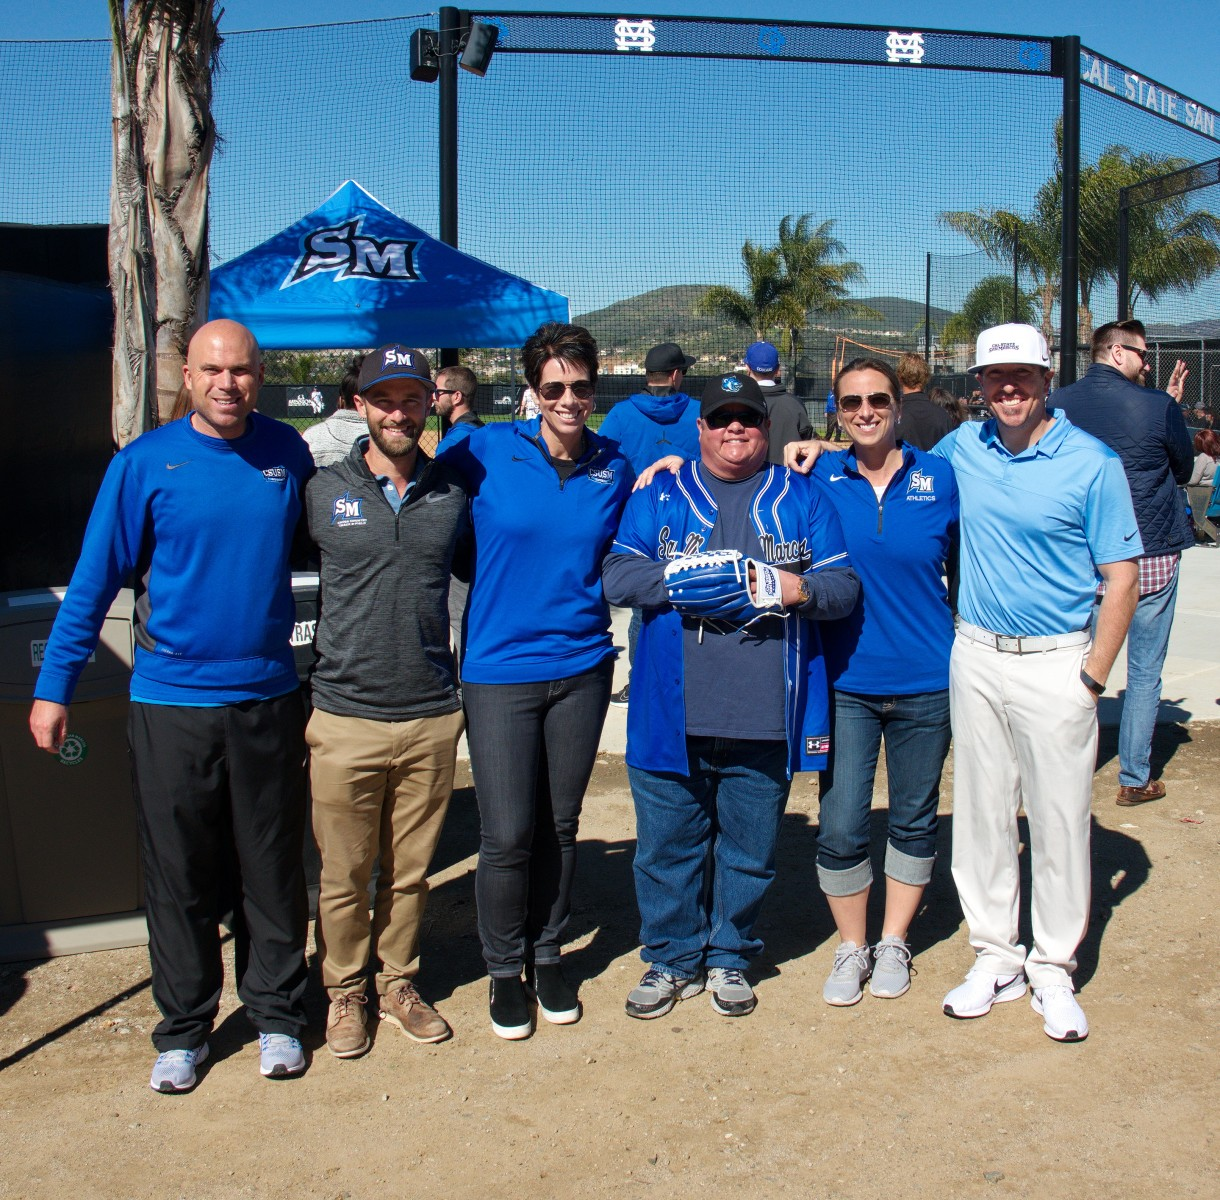 From left to right, Bobby Renneisen, Torrey Olson, Jennifer Milo, Fox Russell, Andrea Leonard and Greg Hutton before a softball game. Fox surprised the CSUSM athletic department with a $100,000 gift for CSUSM Giving Day last November.